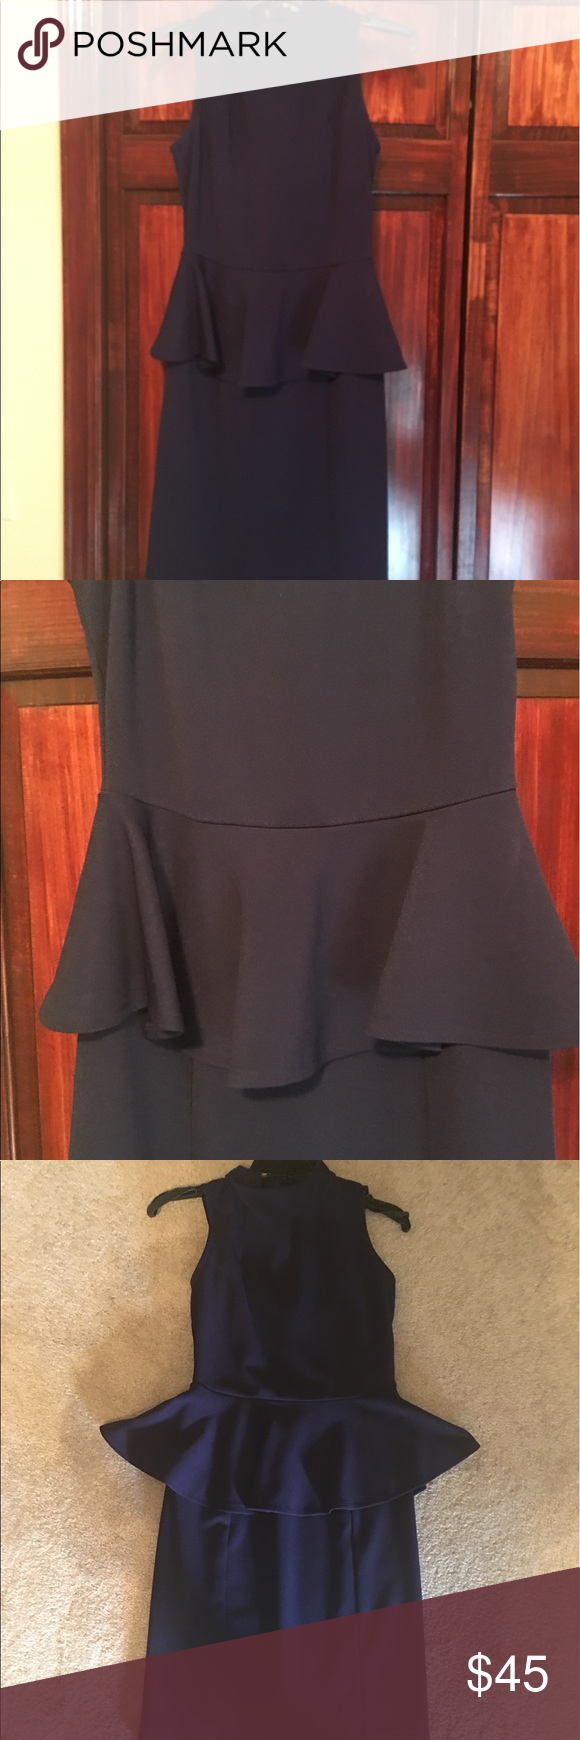 """Cremieux Navy Knit Peplum Dress Looks New Stylish faux turtle neck sleeveless knit dress featuring fitted waist with peplum and straight pencil skirt. Back hidden zipper with peplum and triple seamed skit to make your booty look fabulous. Polyester and spandex worn once to a rehearsal dinner no sign of wear. 36"""" from shoulder to hem Daniel Cremieux Dresses"""